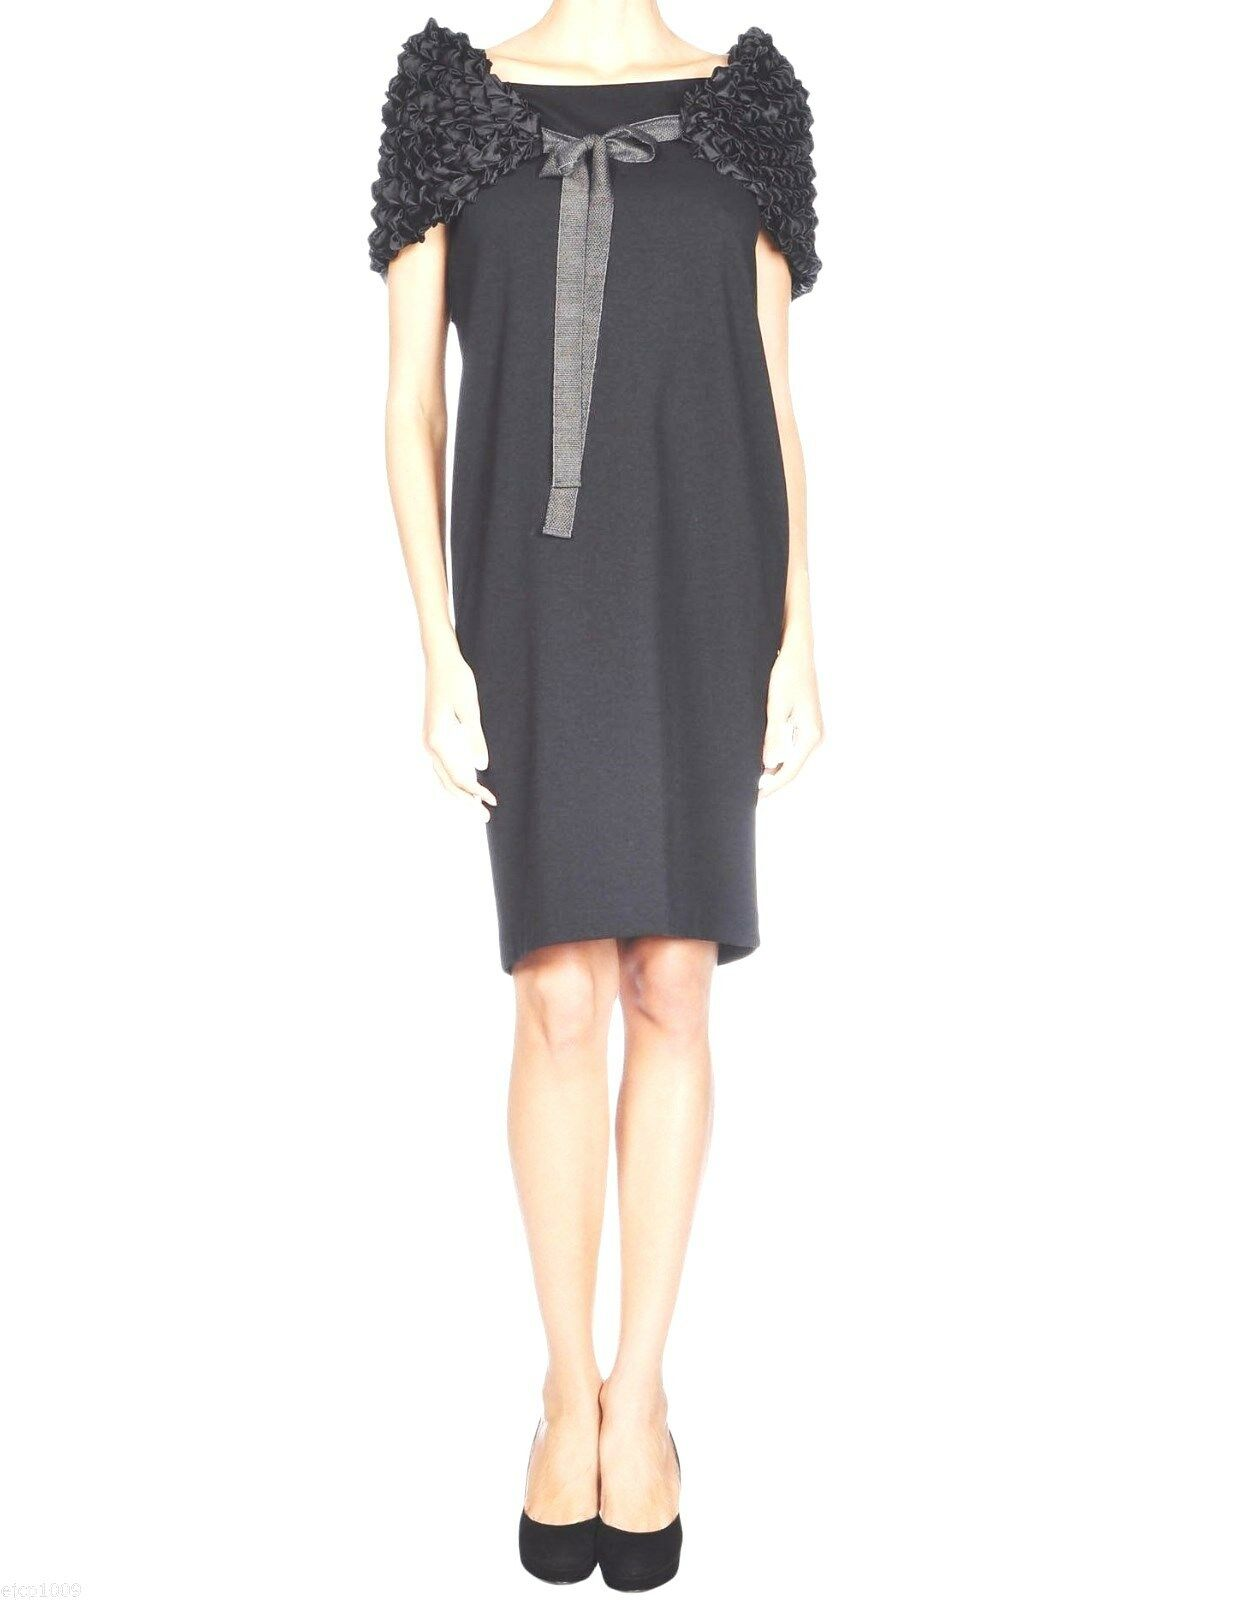 NWT Authentic LAVINIATURRA Jersey Dress, Italian 44   US 8, Made in